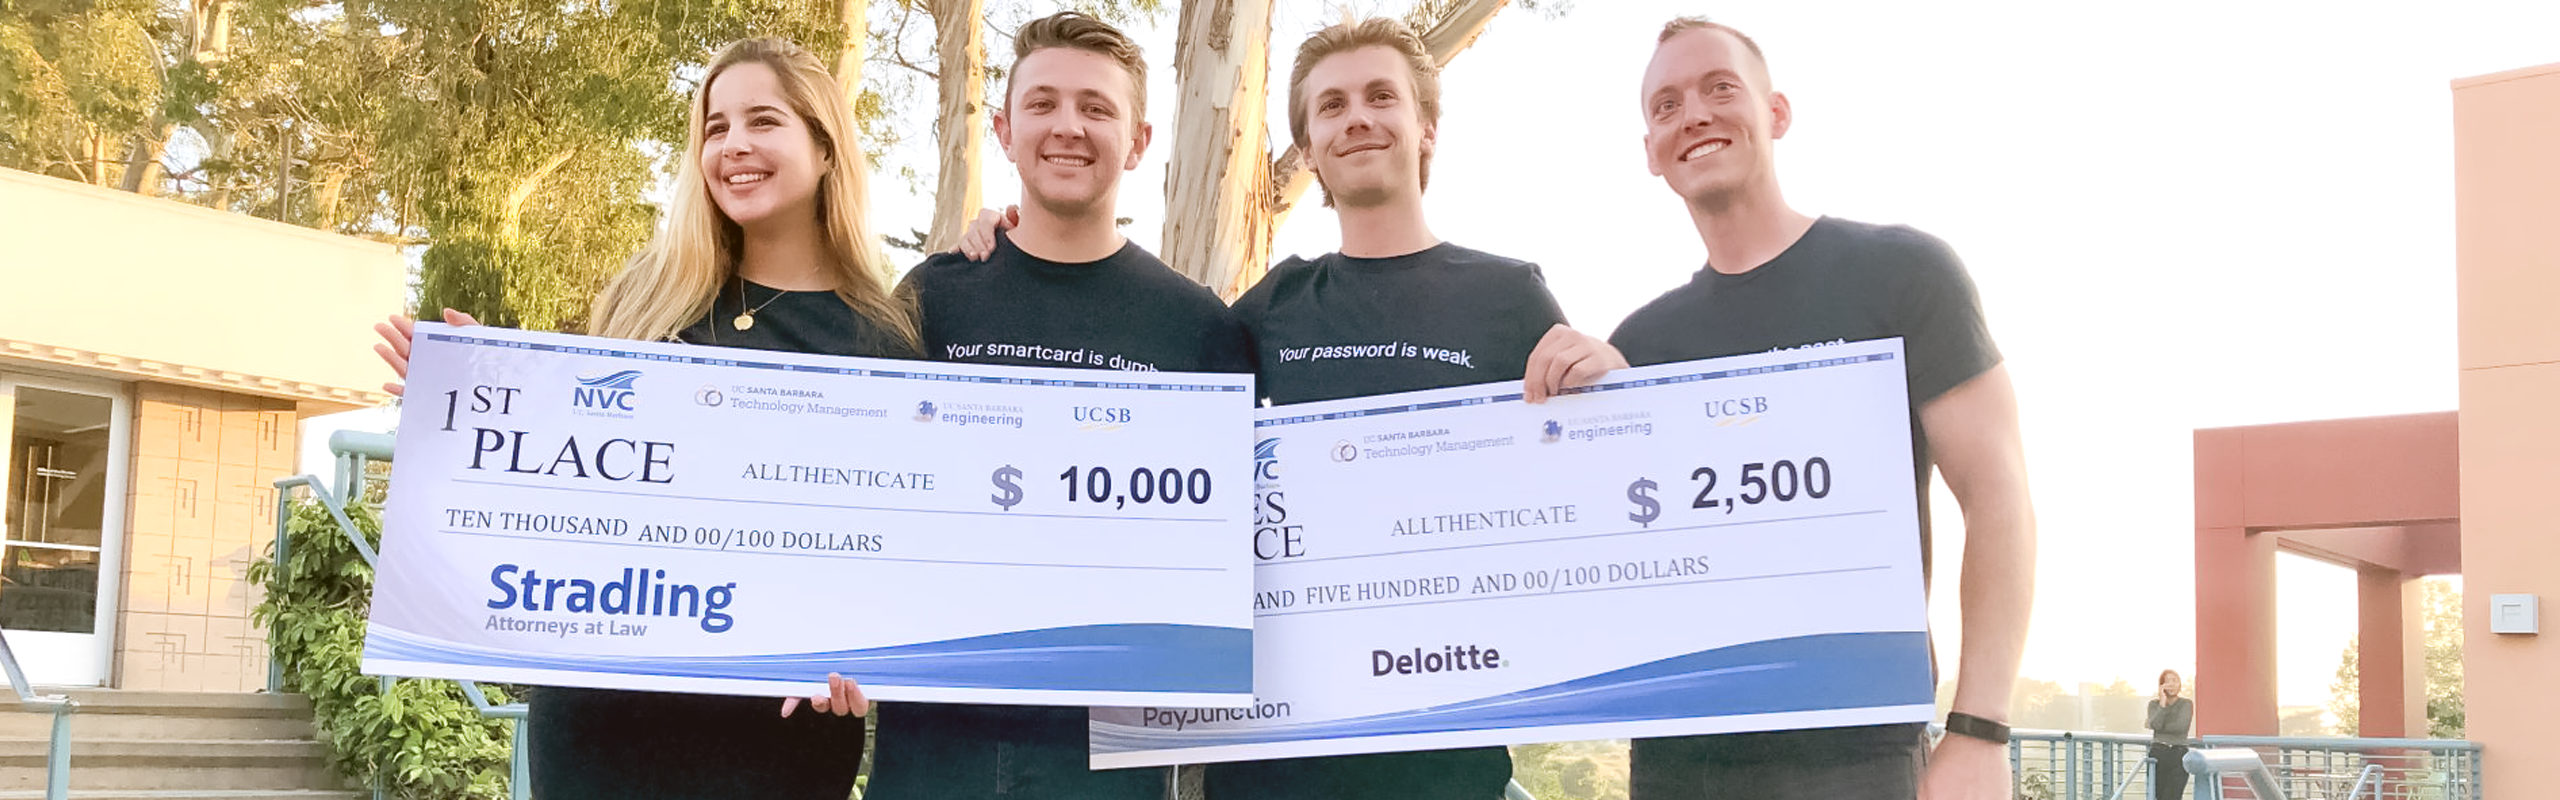 Allthenticate holding award checks at the 2019 New Venture Competition at UCSB